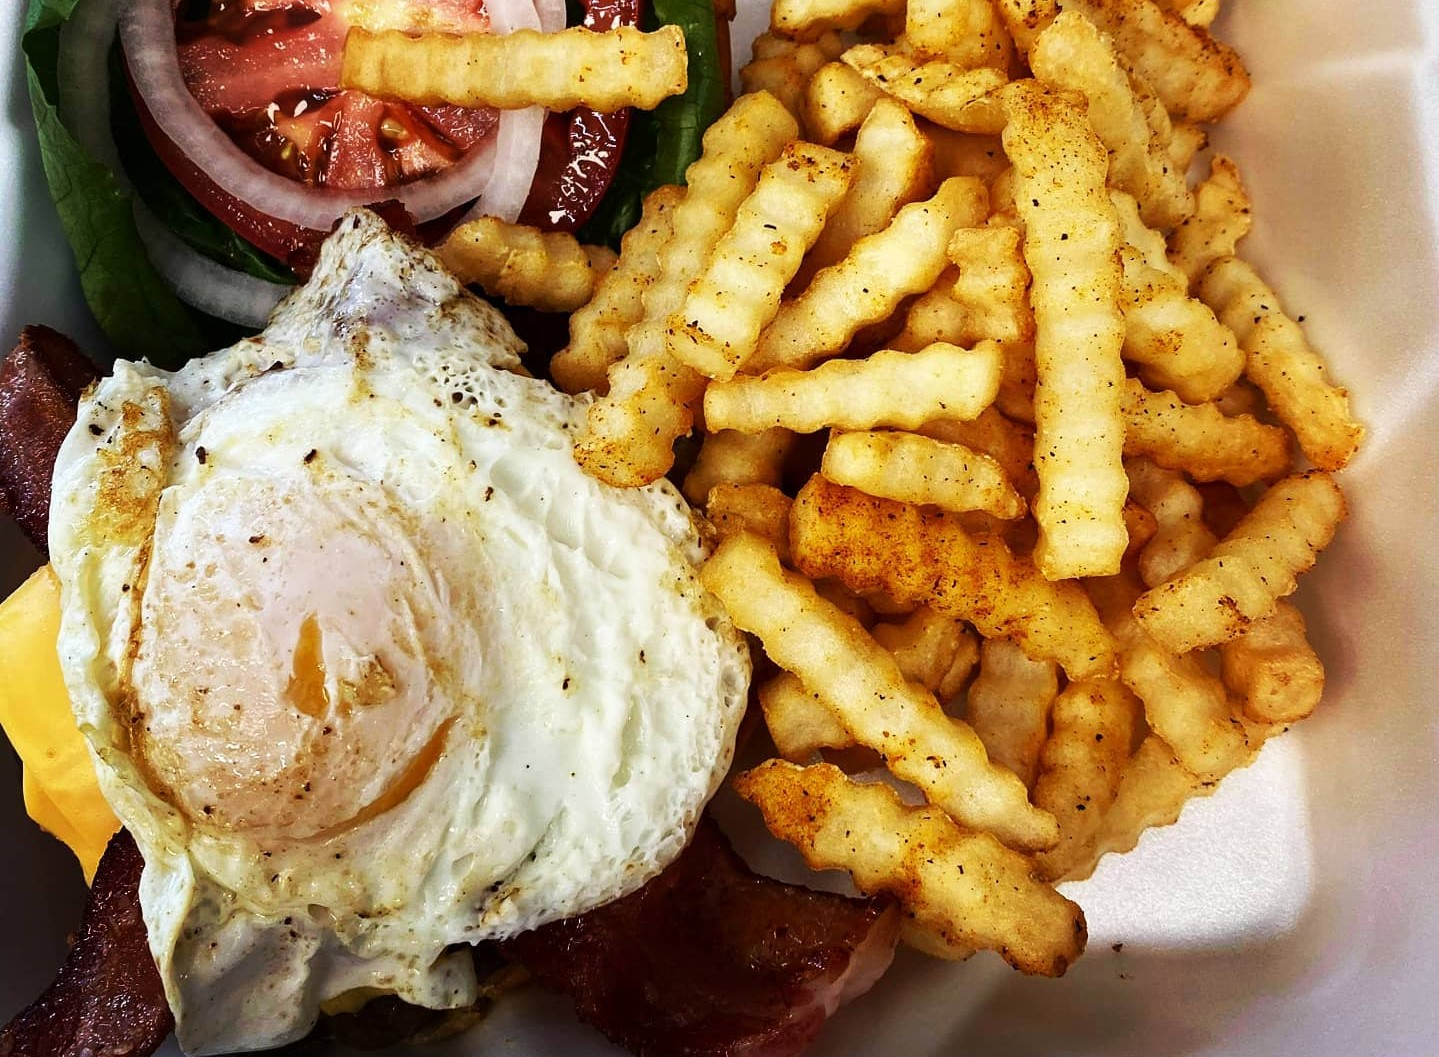 burger topped with a fried egg and served with fires